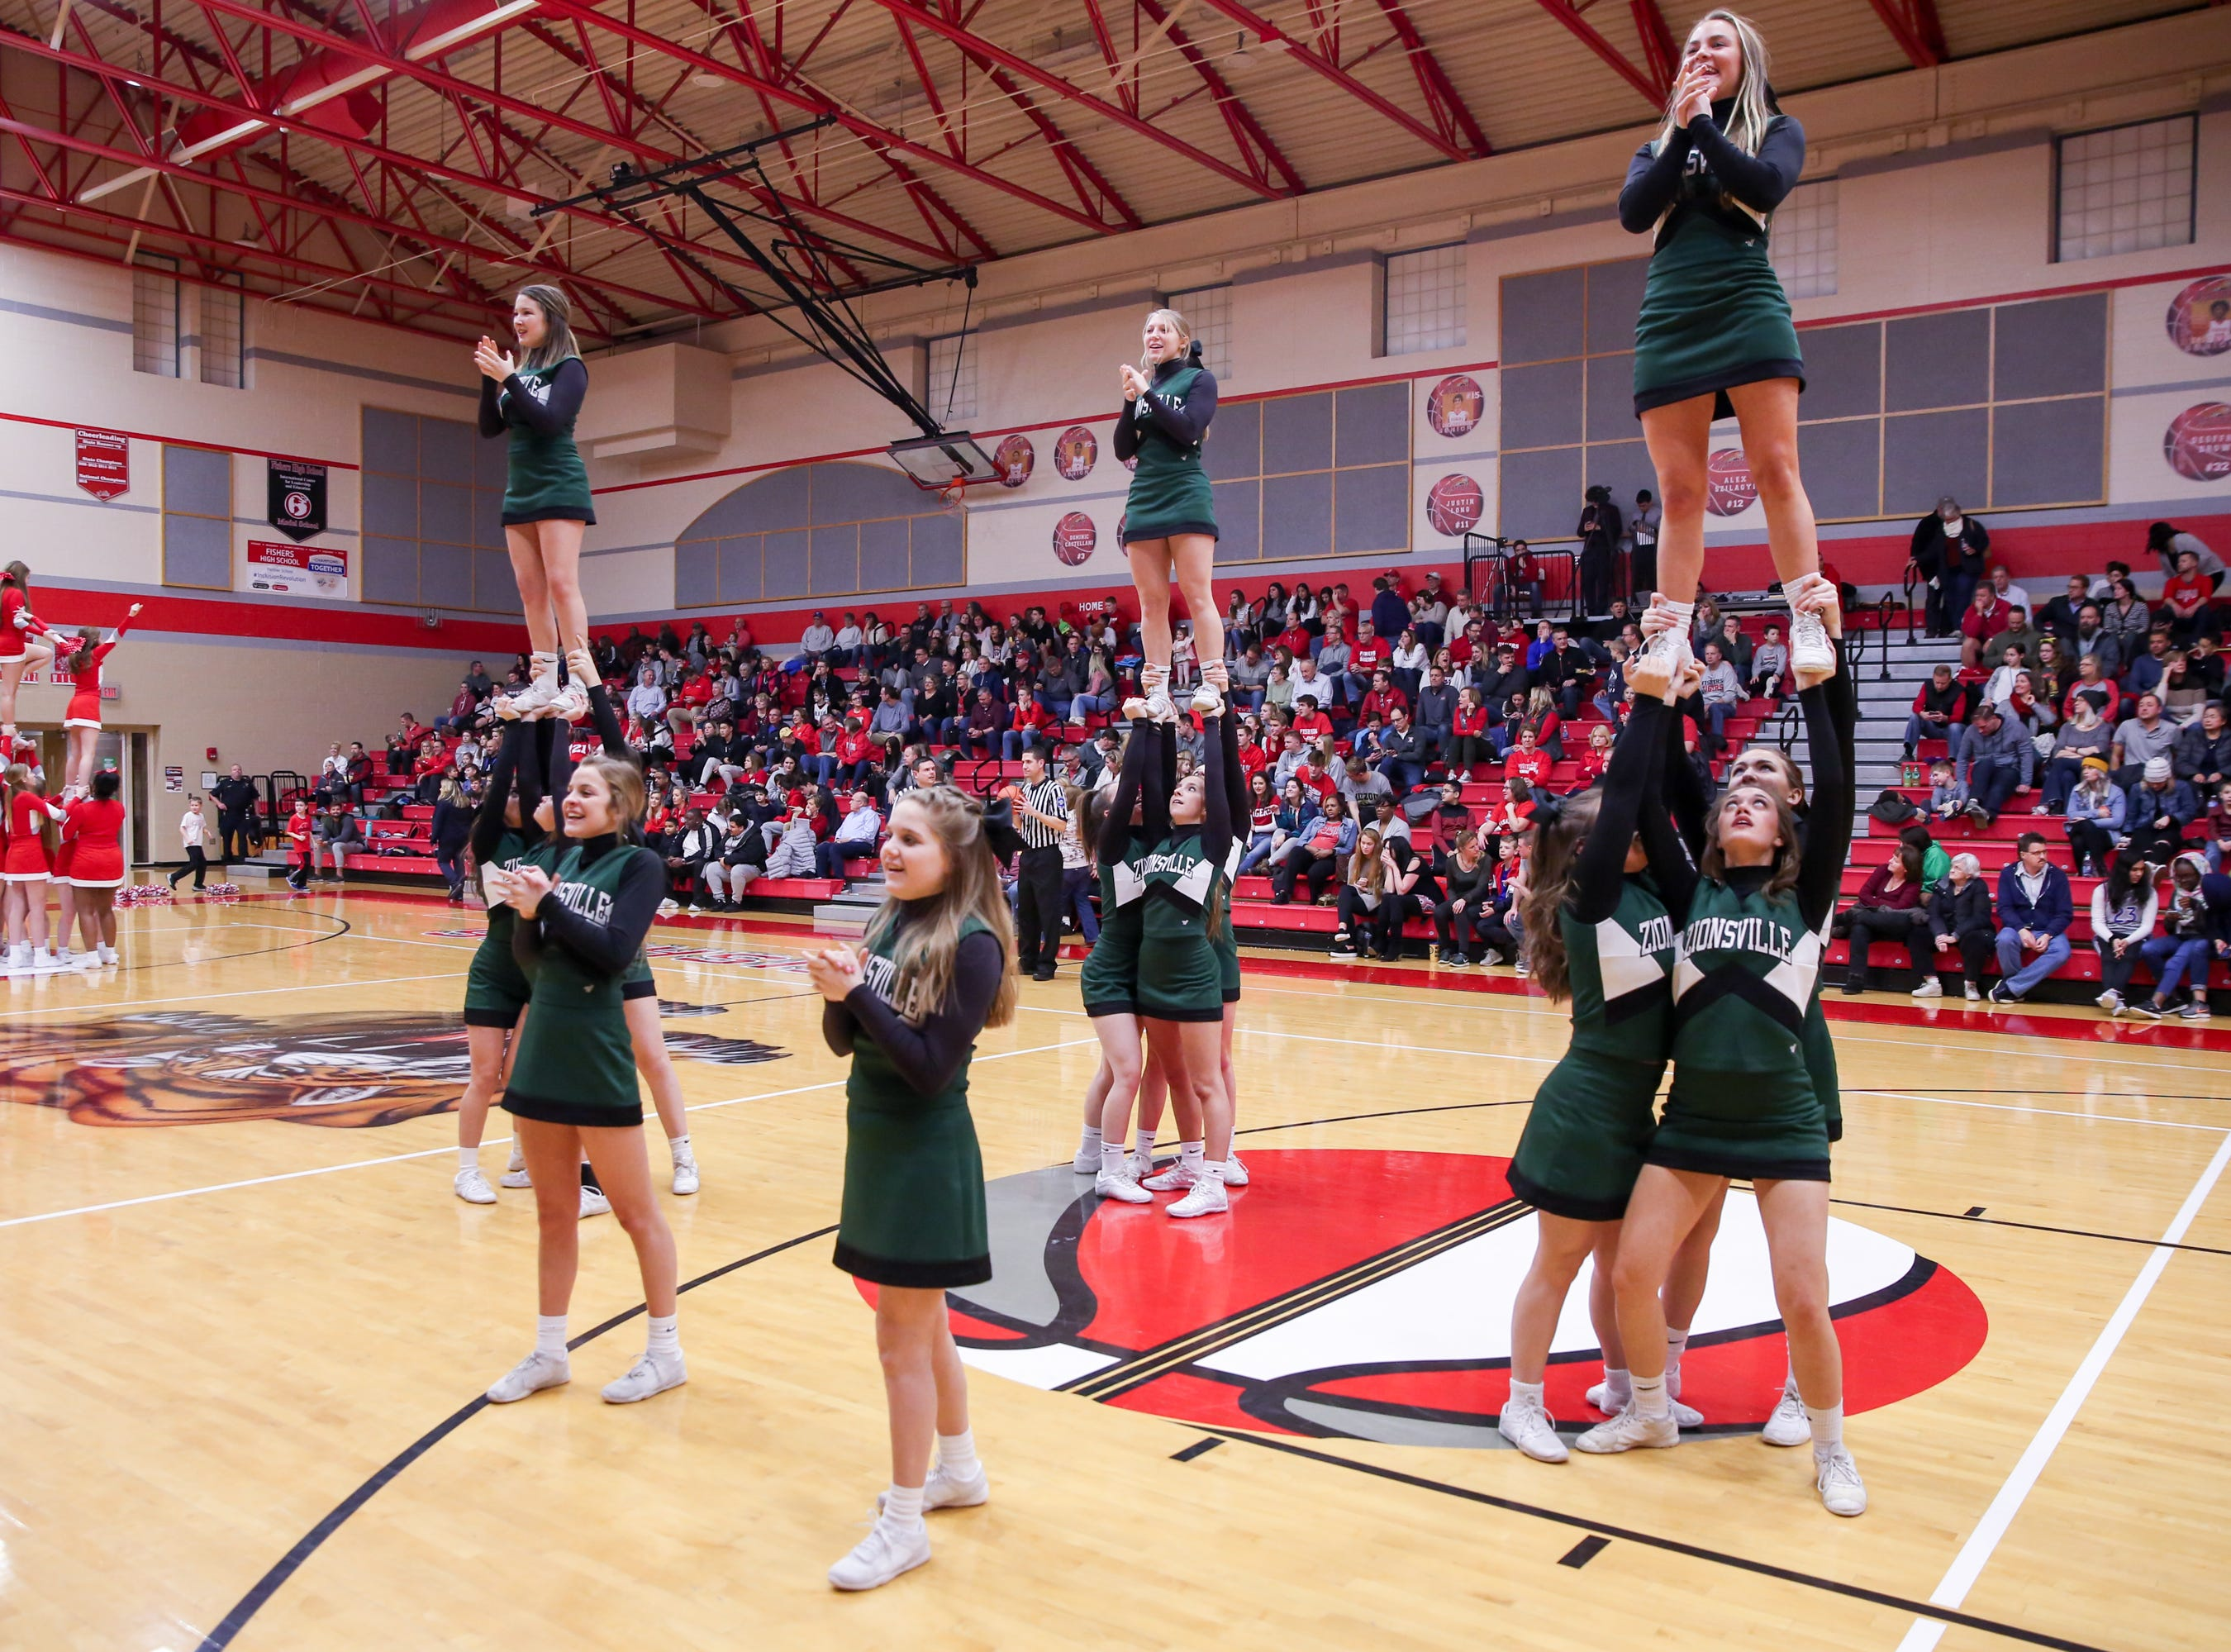 Zionsville cheerleaders rally the crowd during the second half of Zionsville vs. Fishers high school boys varsity basketball game held at Fishers High School, February 15, 2019.